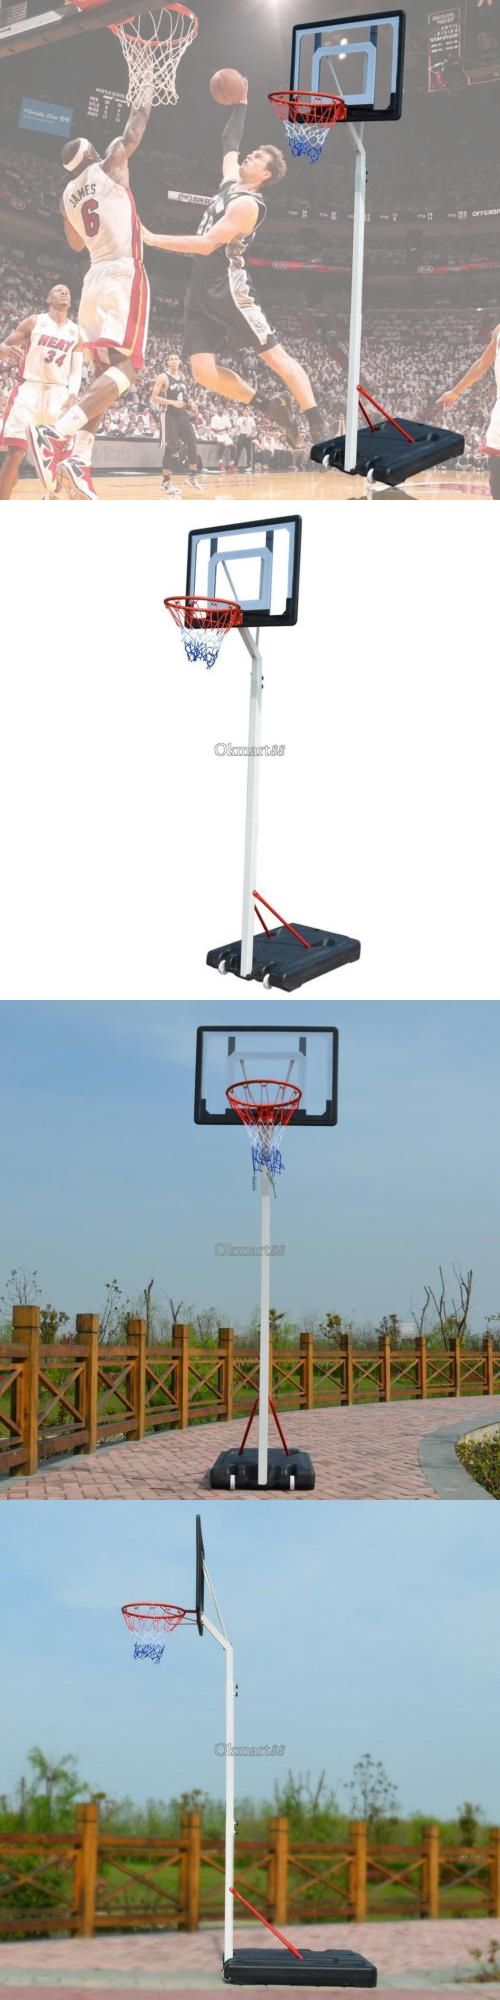 Rims and Nets 158962: Adjustable Portable Wheel Basketball System Hoop Indoor Outdoor Net Goal 2.6M -> BUY IT NOW ONLY: $115.29 on eBay!